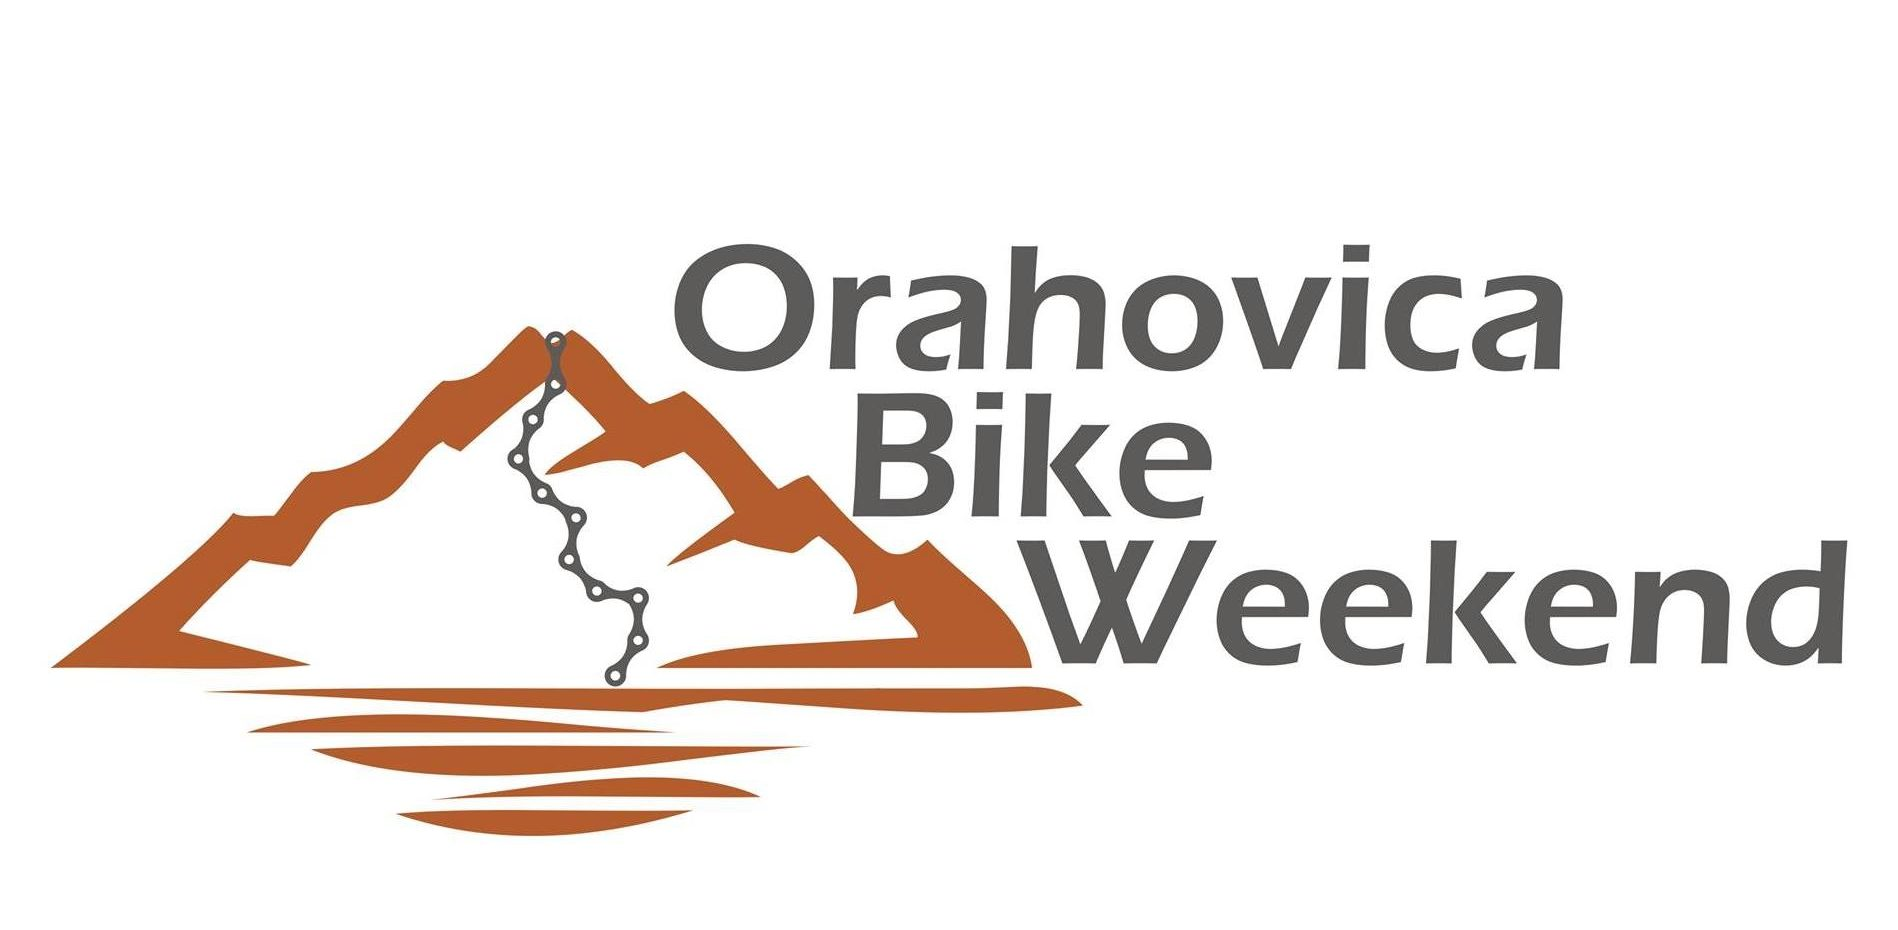 Orahovica Bike Weekend